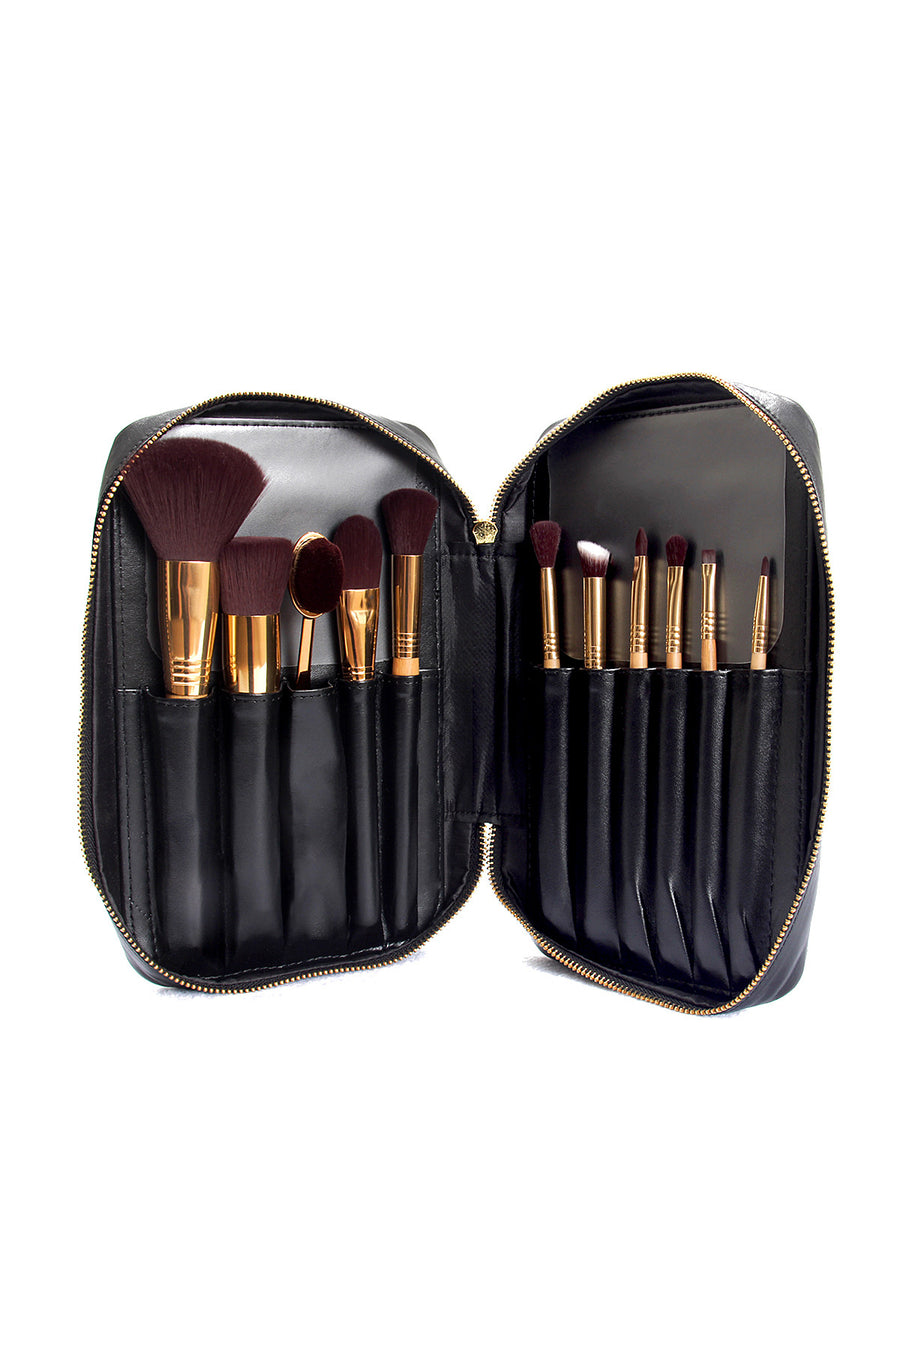 Professional Makeup Artist Complete 11-Piece Brush Kit - Bamboo - Blend Mineral Cosmetics